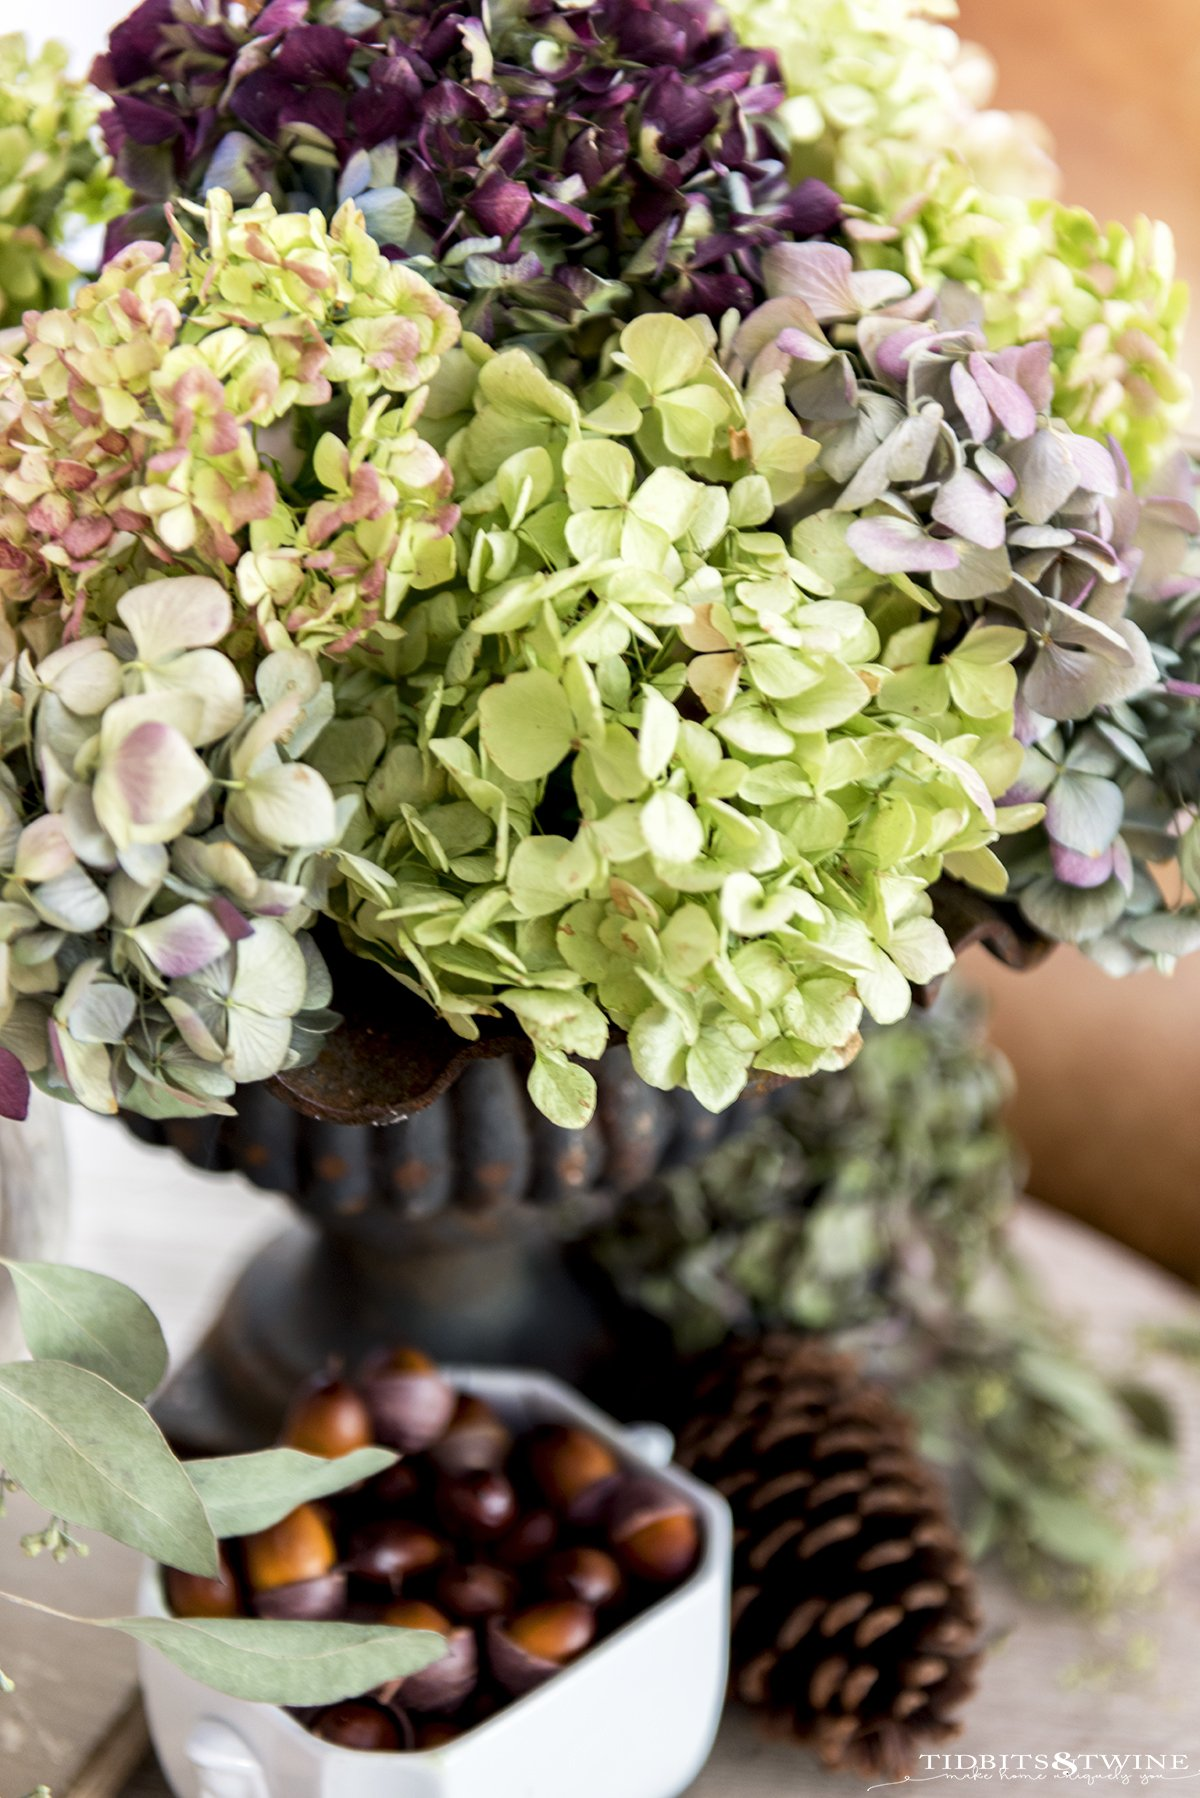 bouquet of dried hydrangea with green pink and purple flowers in an iron urn with acorns below as part of vignette